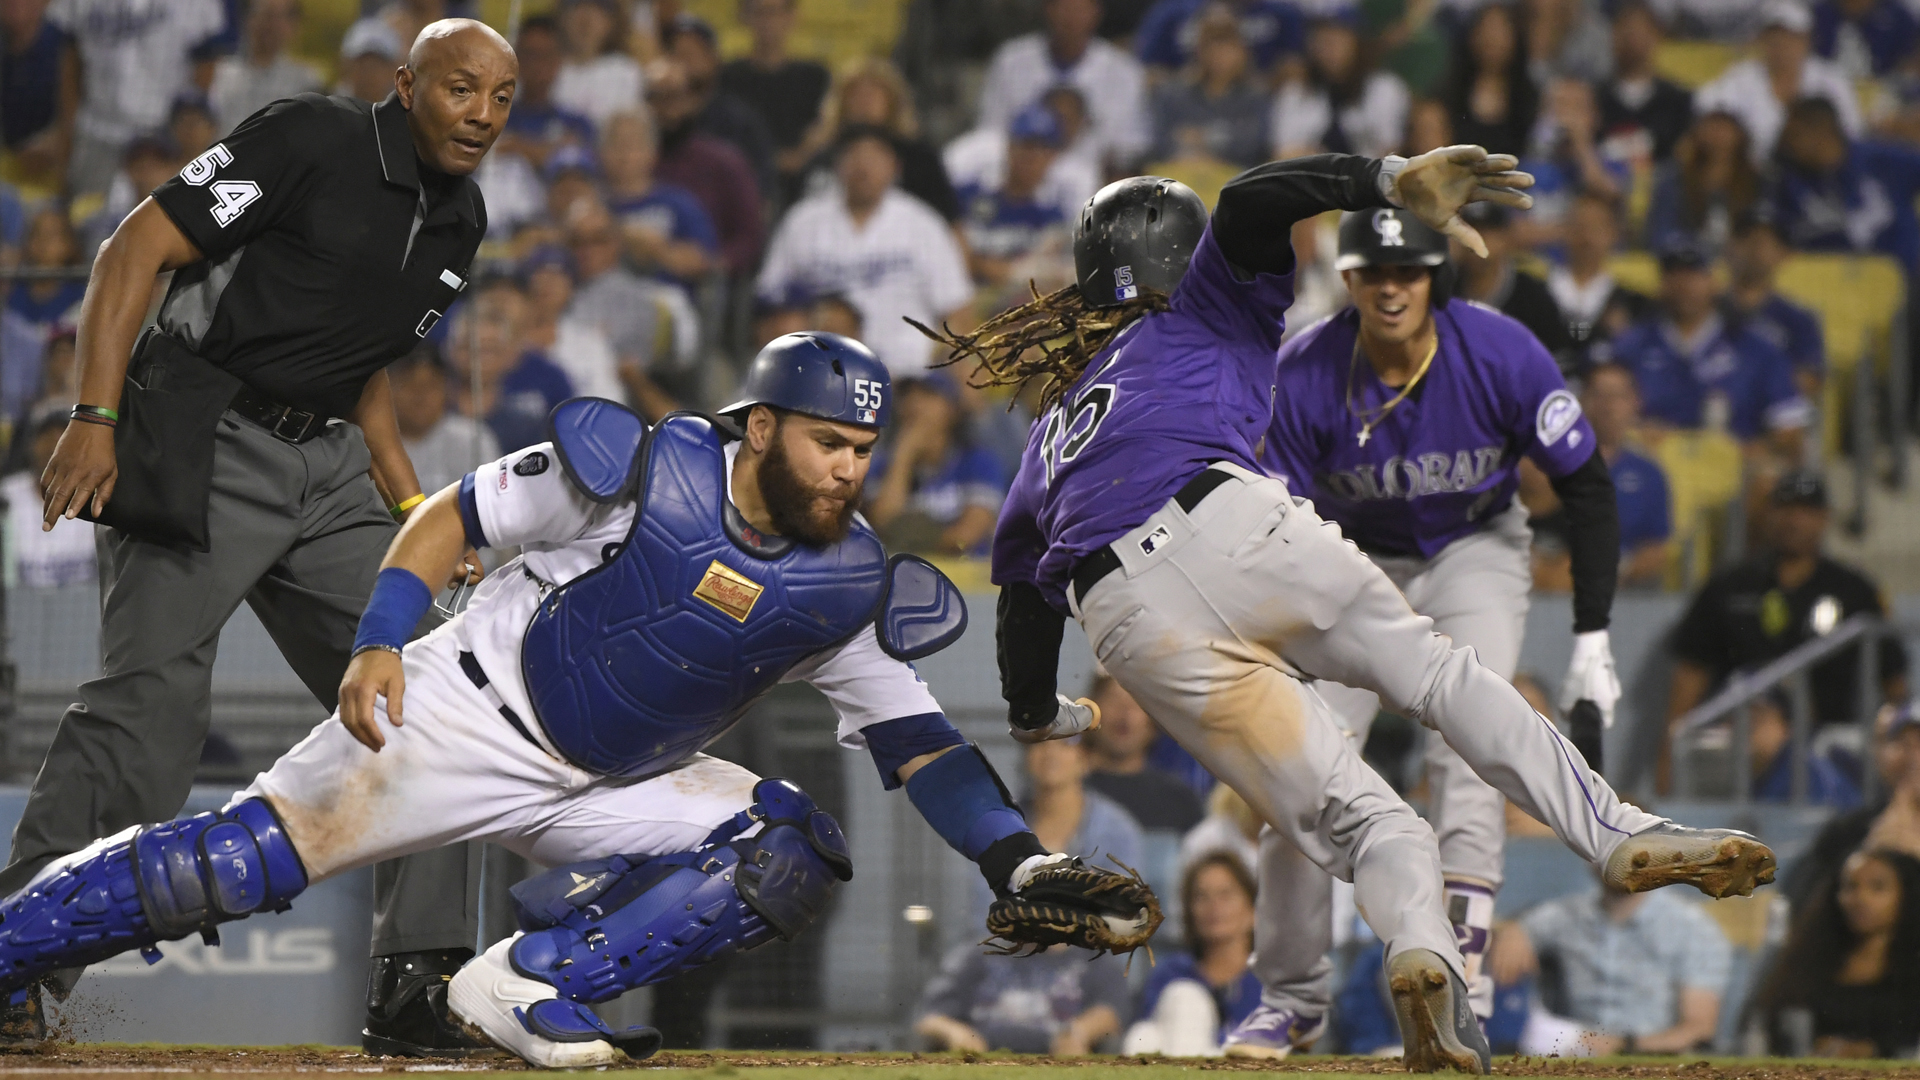 Russell Martin #55 of the Los Angeles Dodgers tags Raimel Tapia #15 of the Colorado Rockies out at the plate on a single by Sam Hilliard #43 as umpire Greg Gibson #53 makes the call in the eighth inning at Dodger Stadium on September 21, 2019 in Los Angeles, California. (Credit: John McCoy/Getty Images)